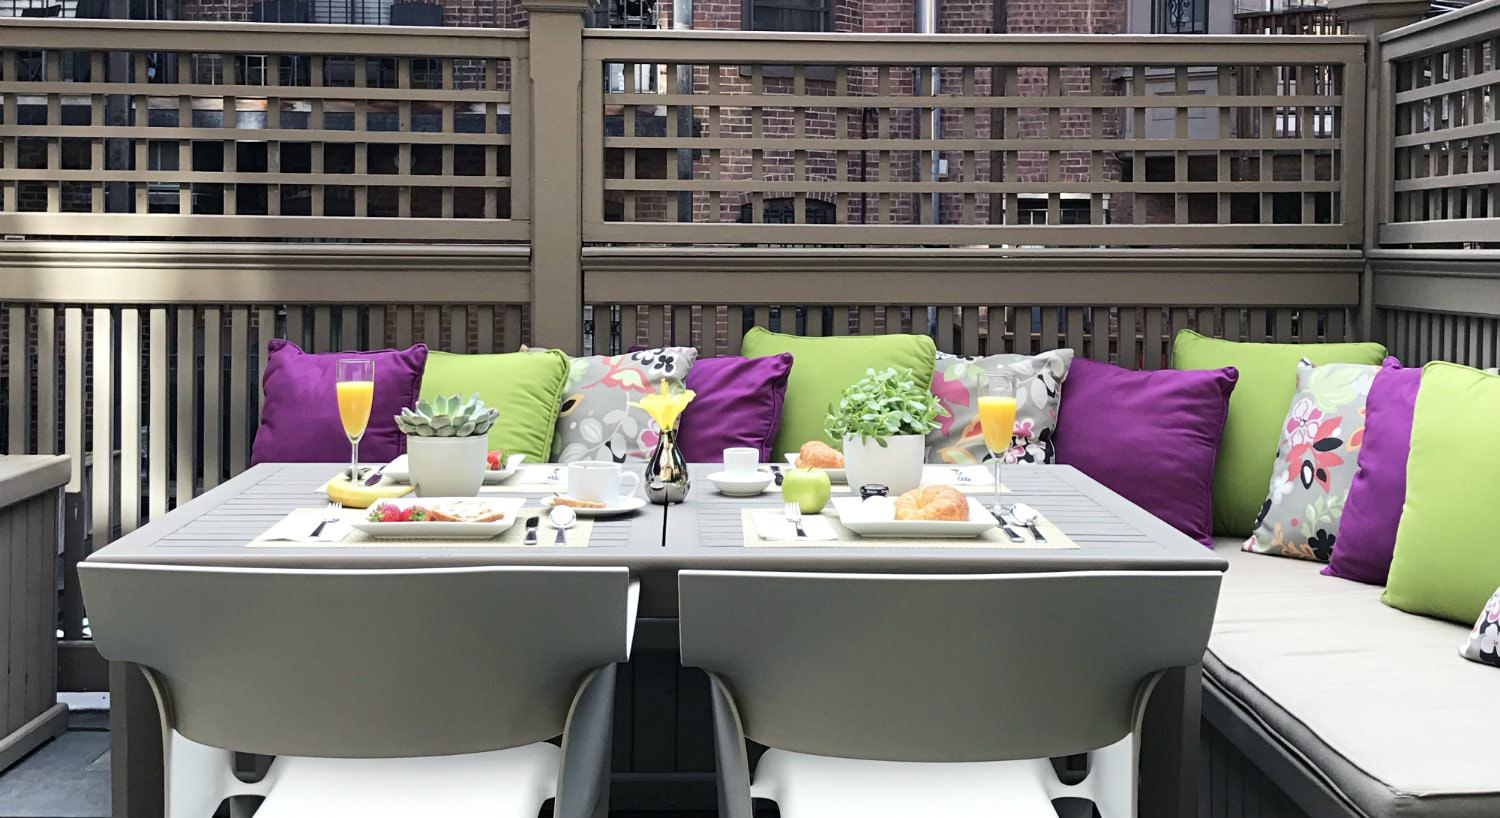 Roof top deck with gray chairs, table, and bench seating topped with purple and lime green pillows